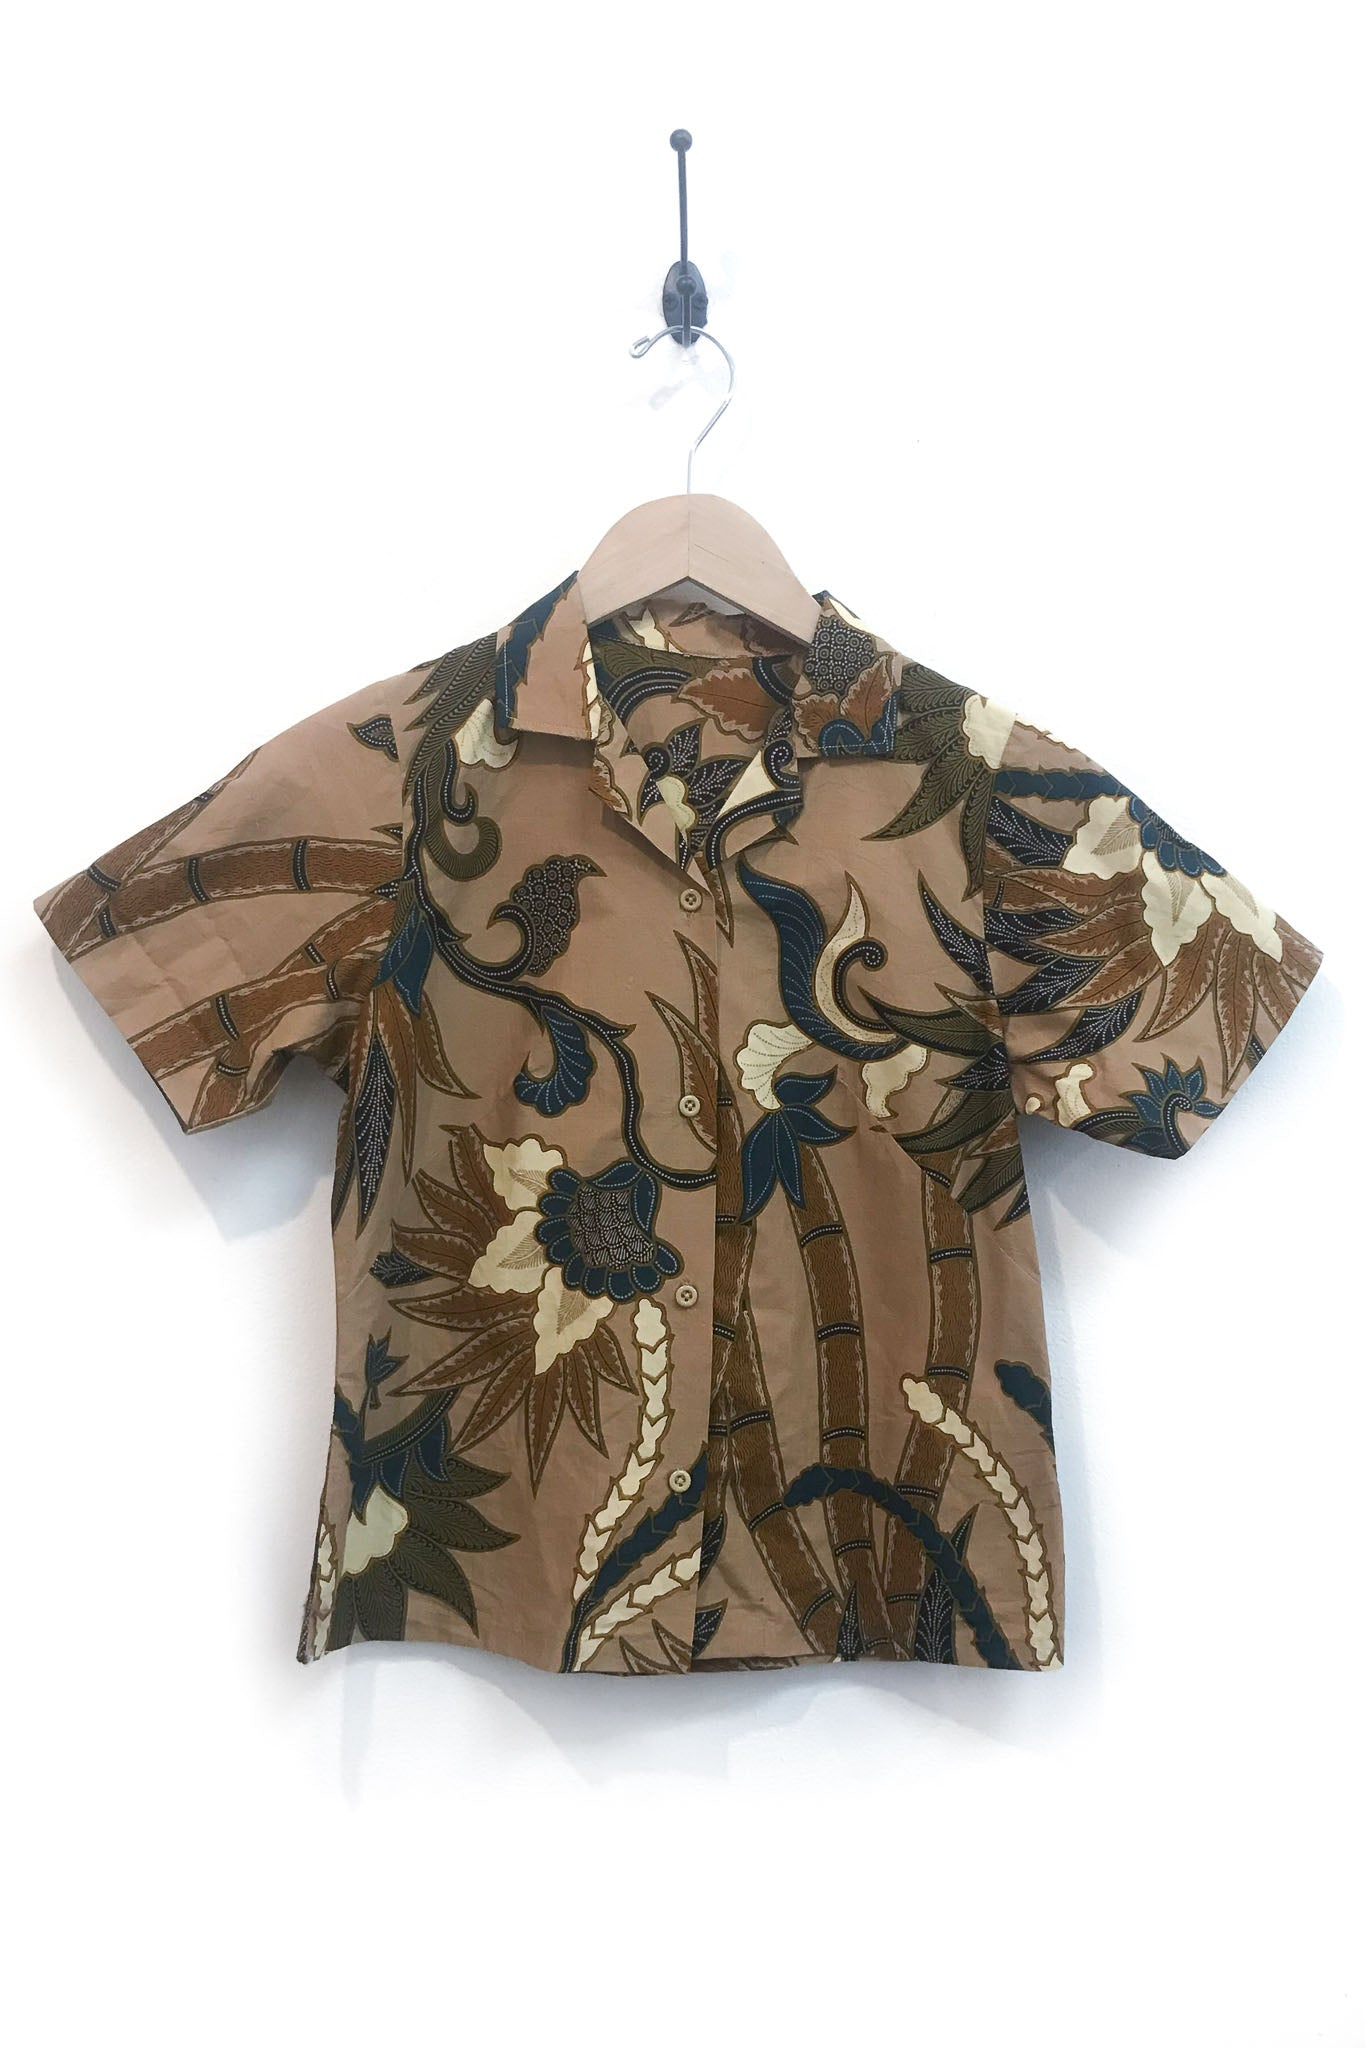 Vintage Bamboo Print Shirt - The Canyon